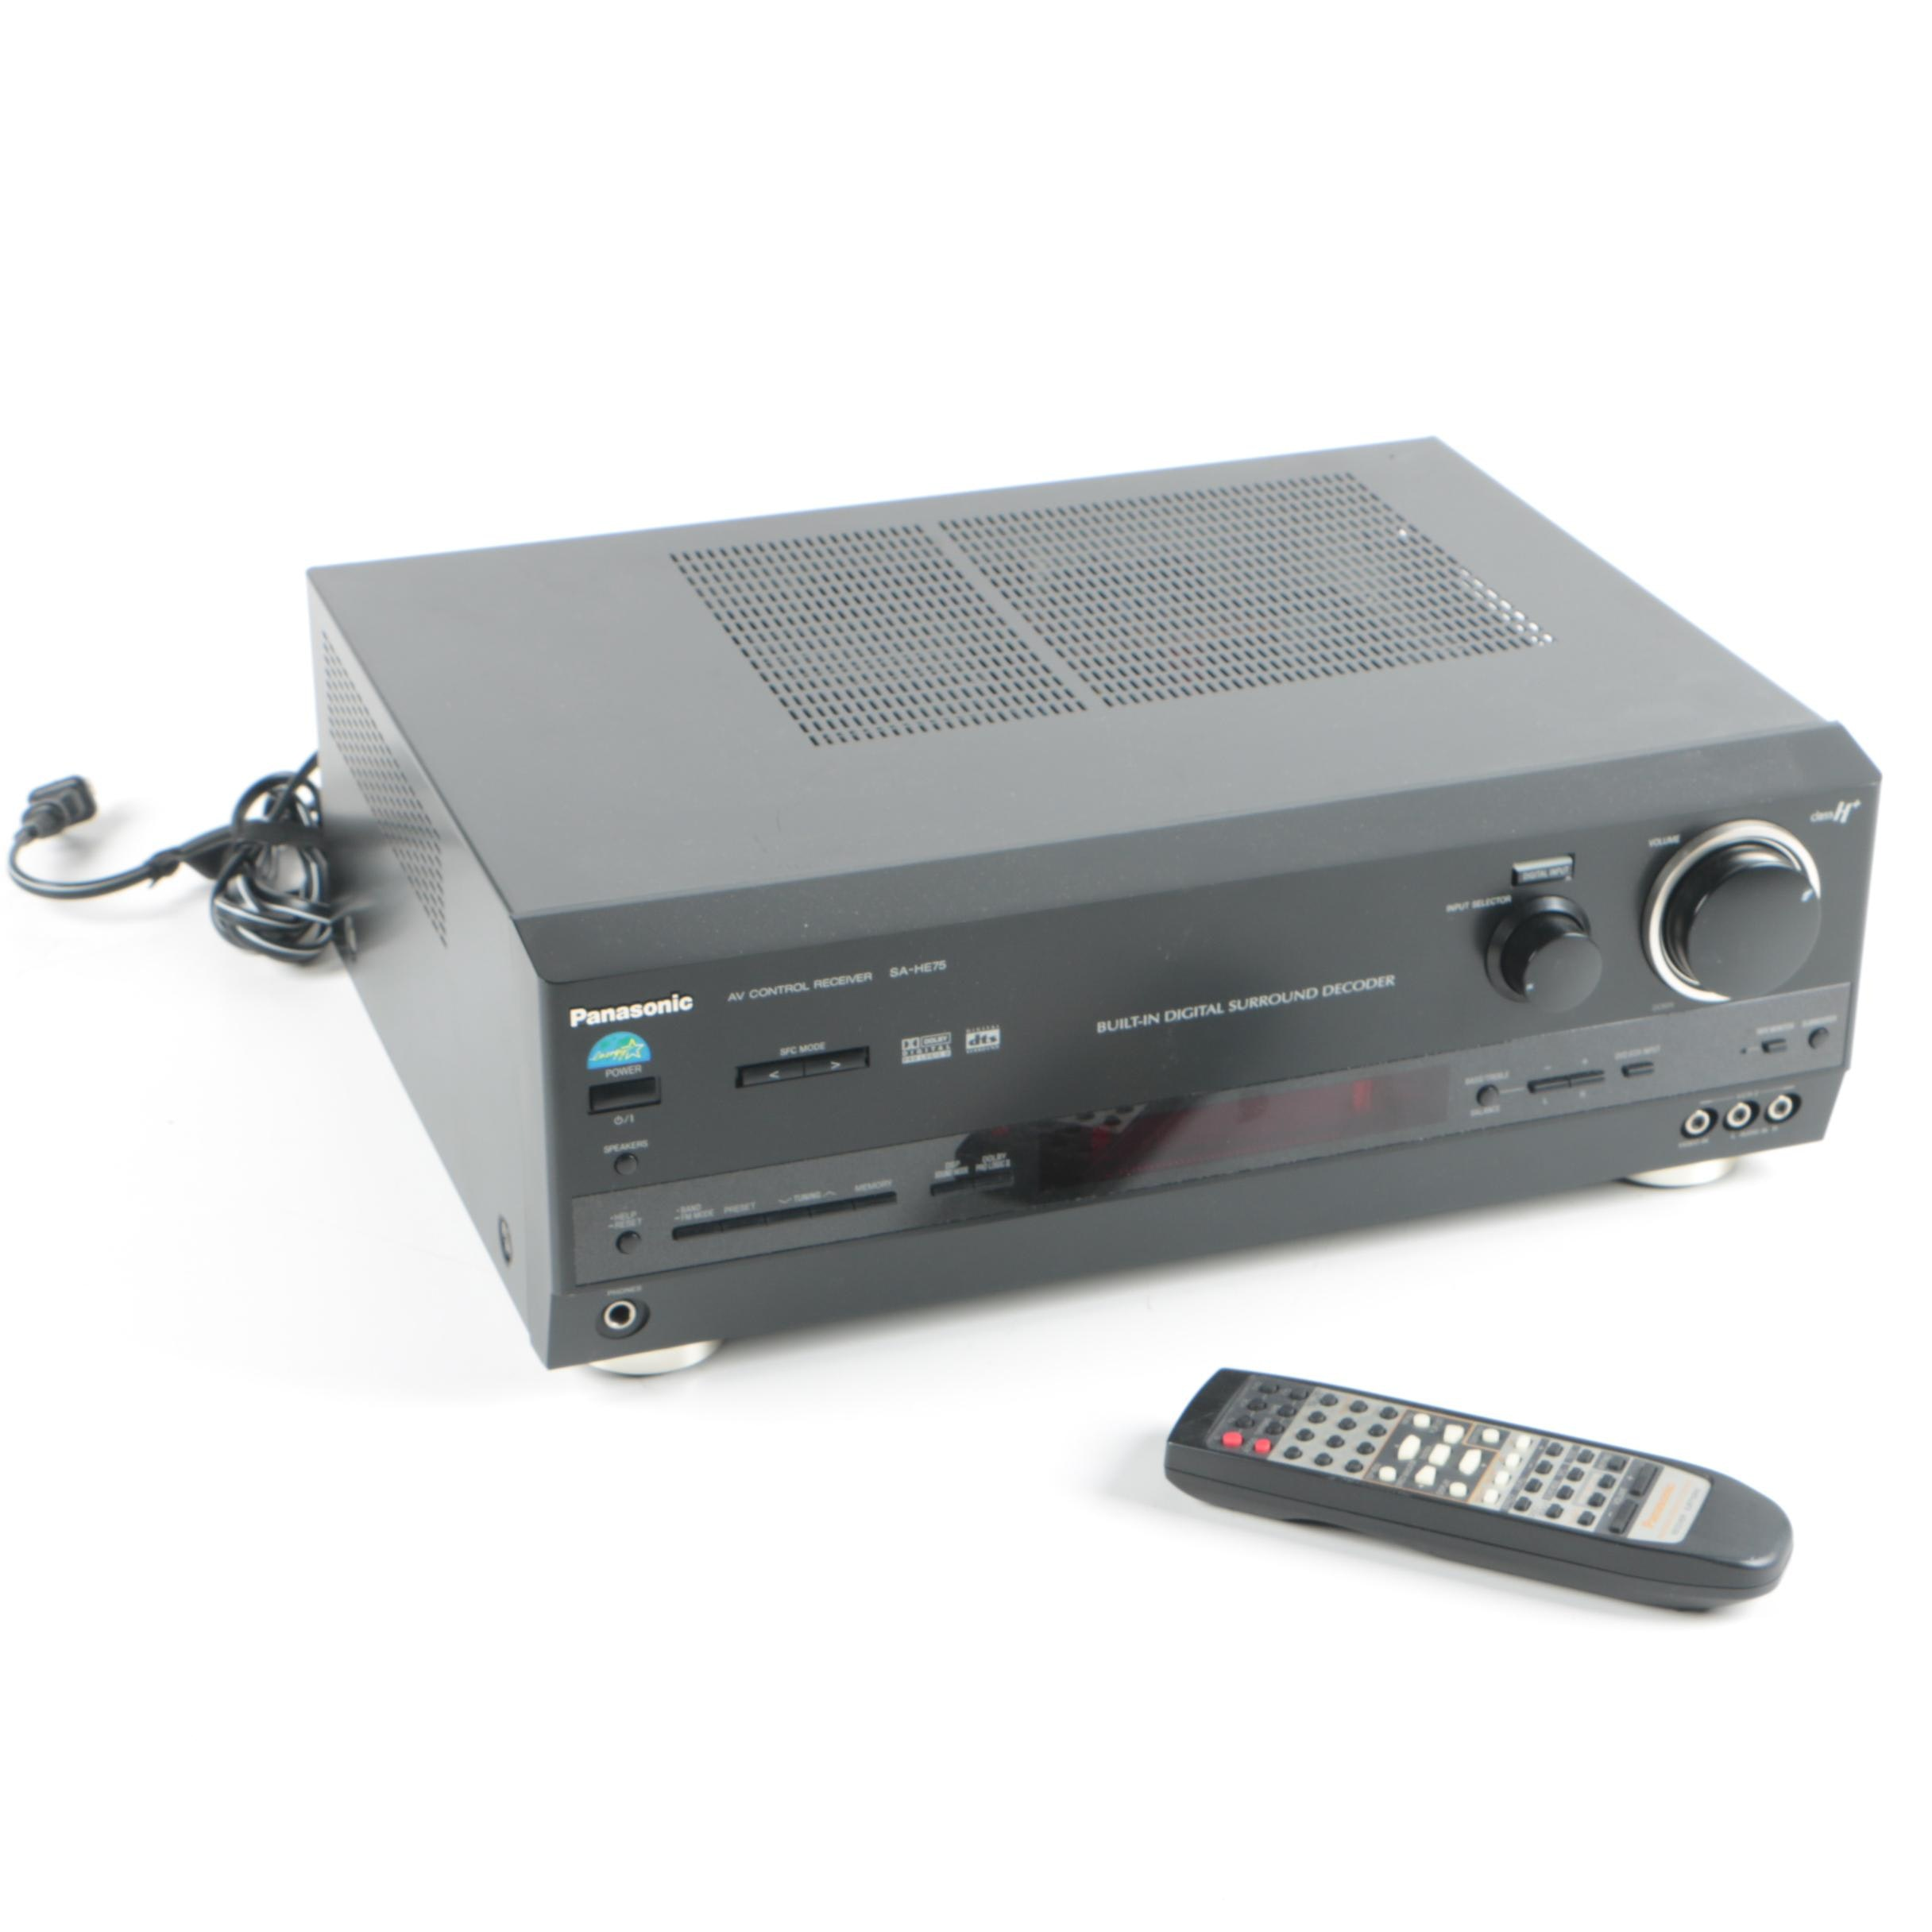 Panasonic SA-HE75 AV Control Center Receiver with Remote Control